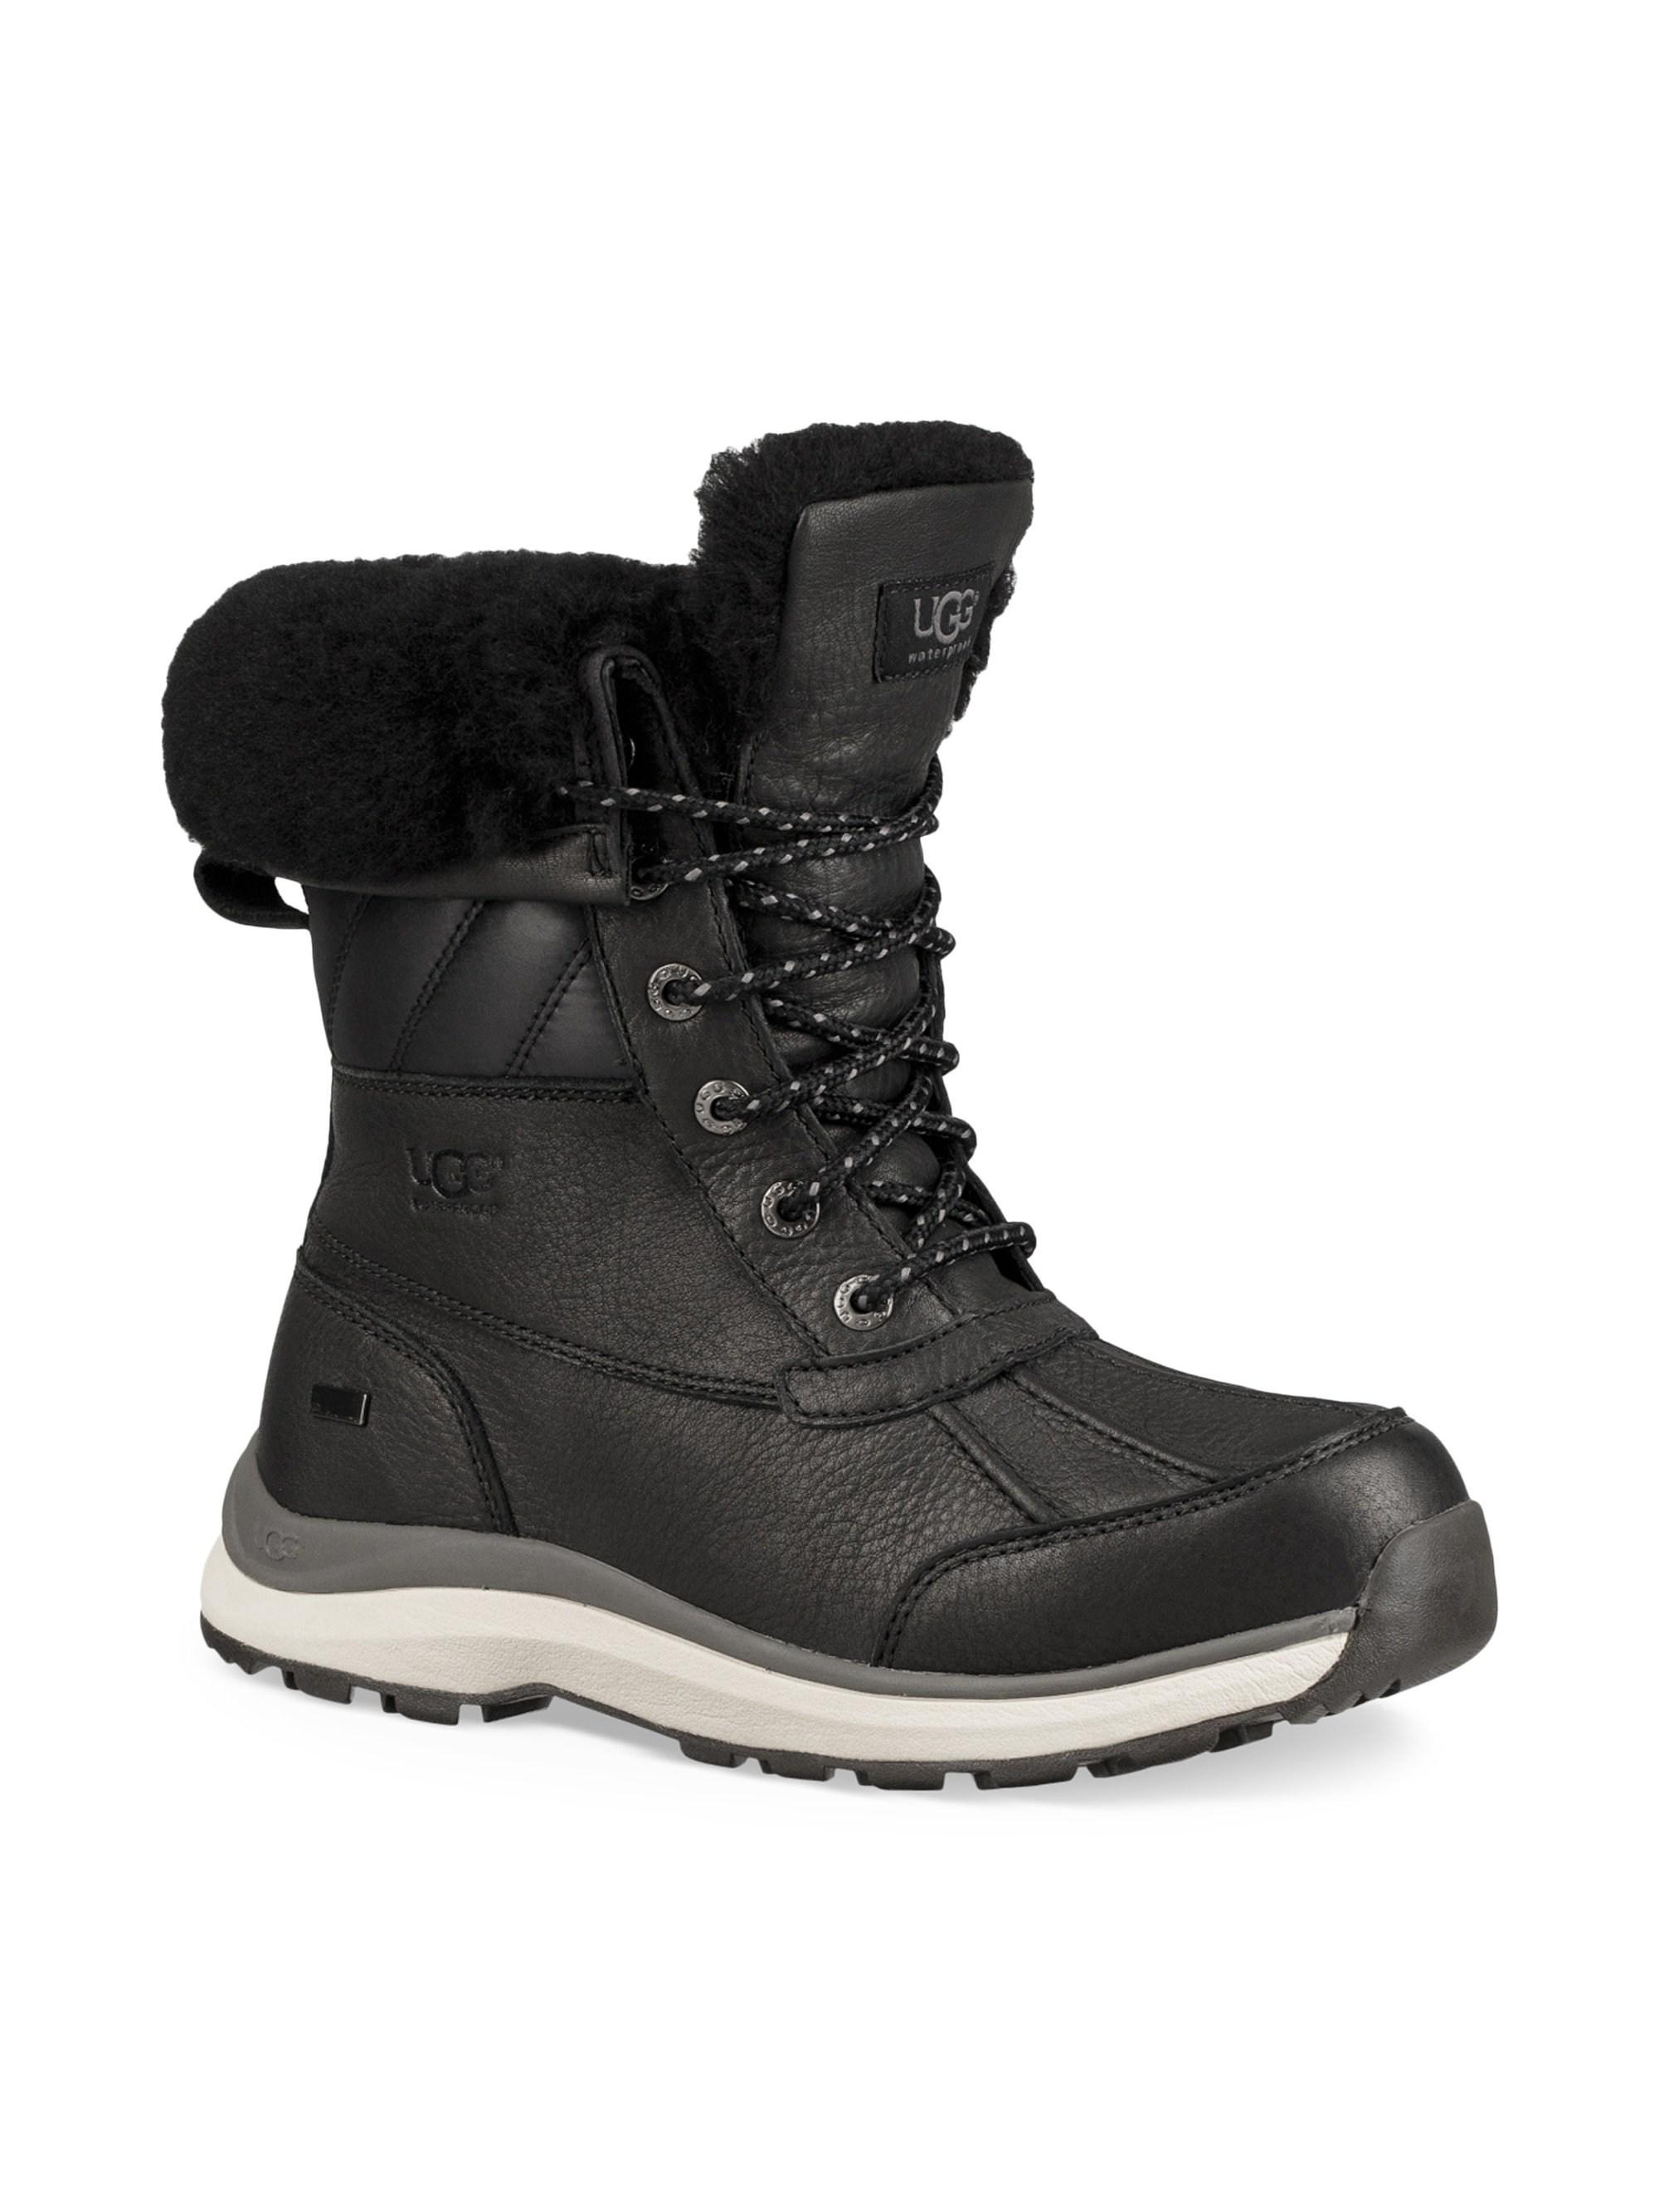 5594119b4d6 Lyst - UGG Women's Adirondack Iii Shearling Quilted Boots - Black ...